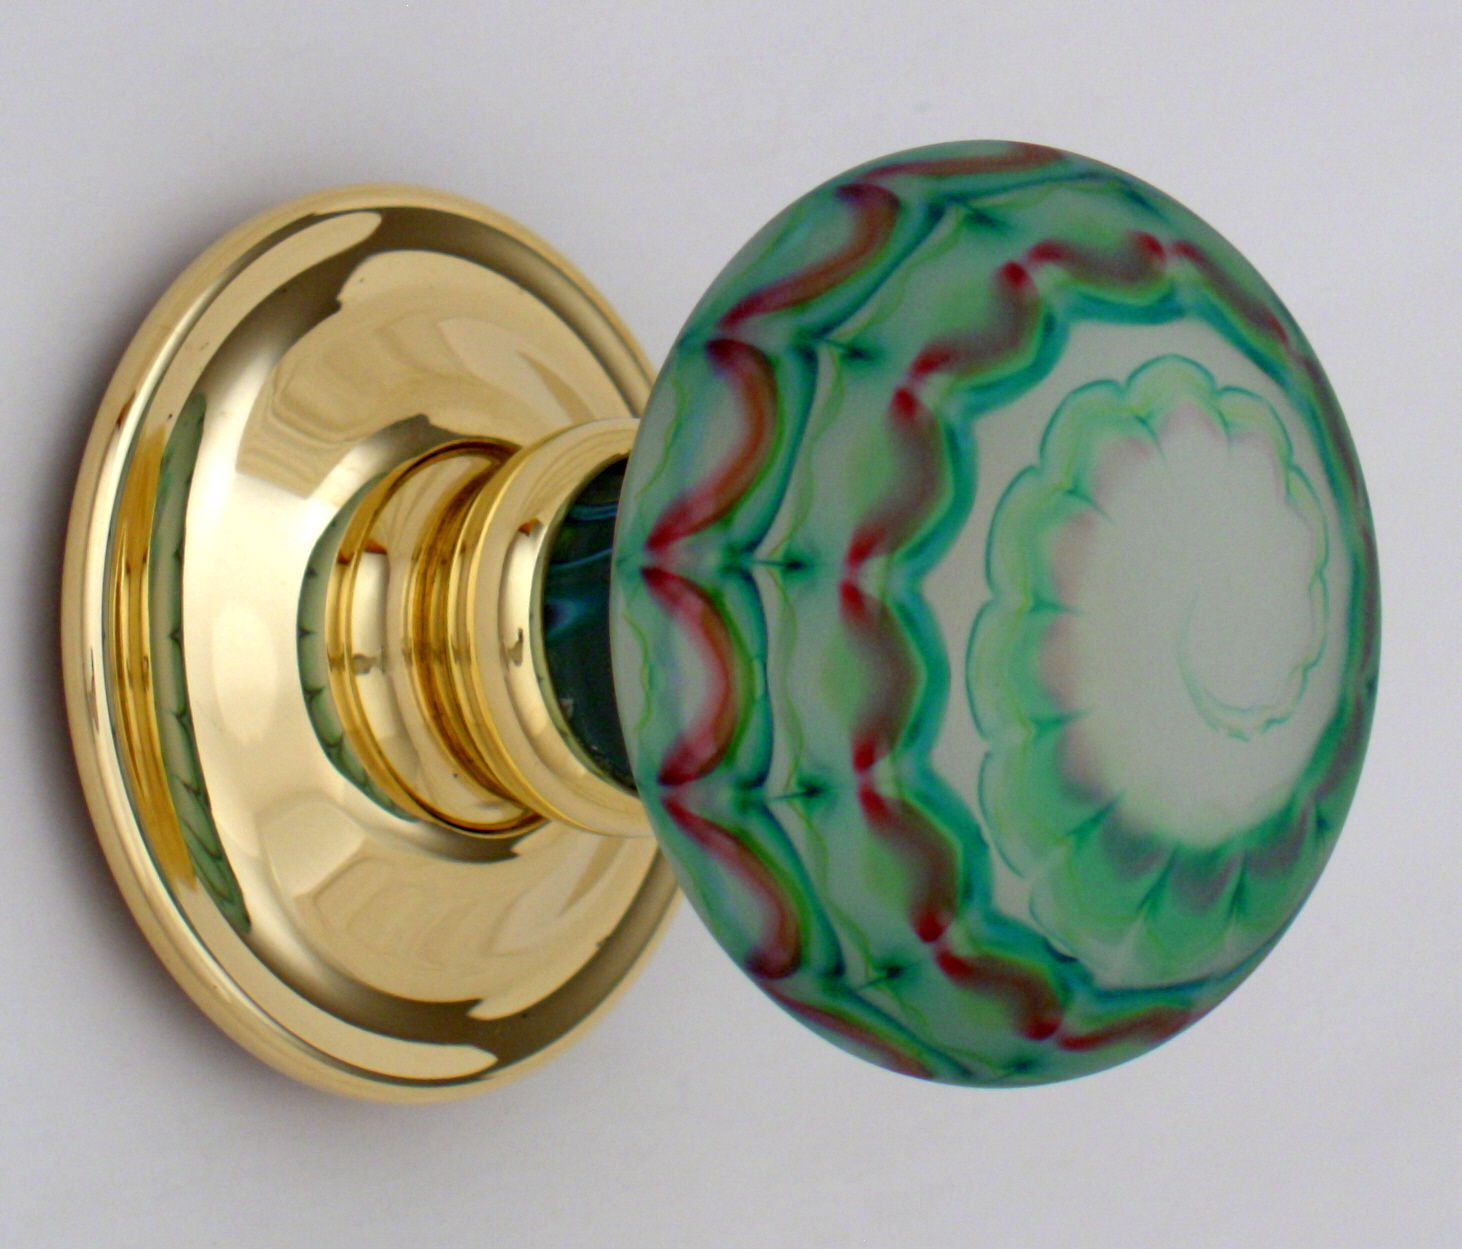 Artisan glass knob swirls of green and red by Merlin Glass | Door ...